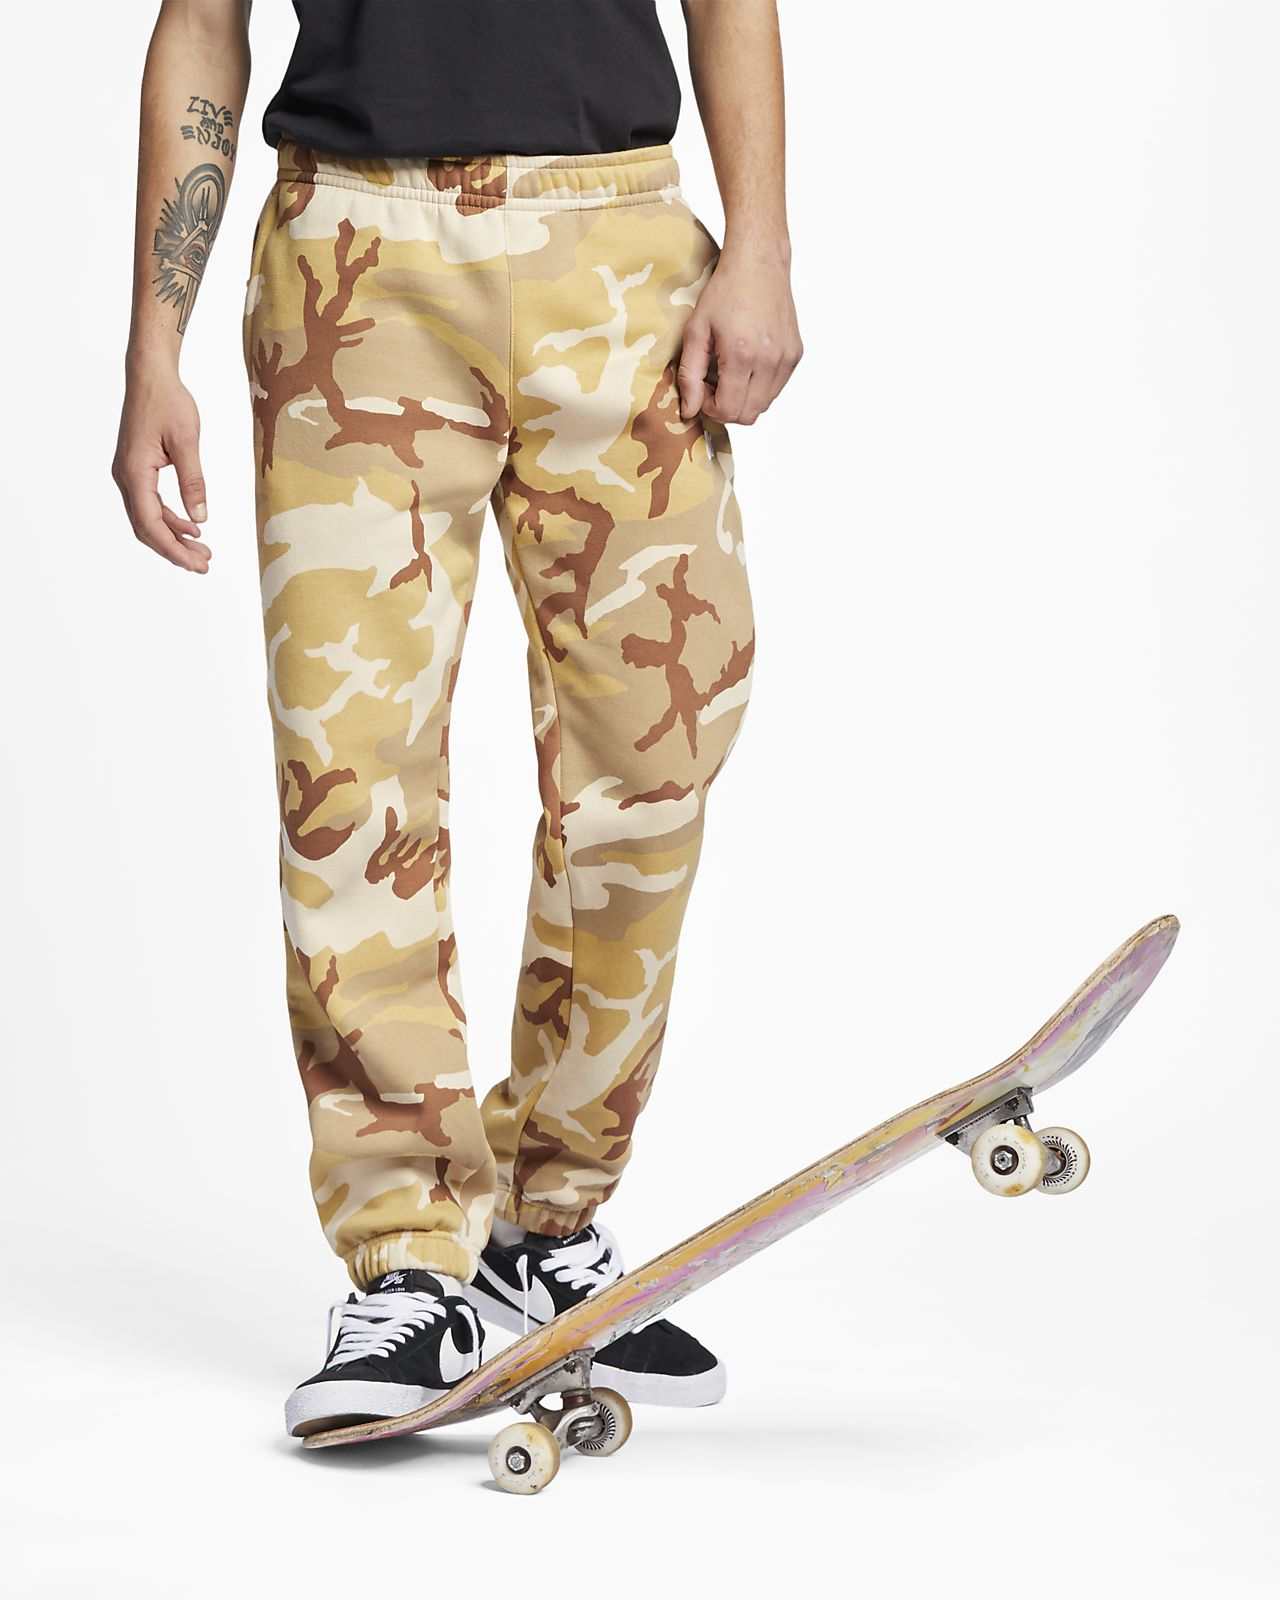 1104bb7aeb Nike SB Icon Men's Camo Skate Trousers. Nike.com GB